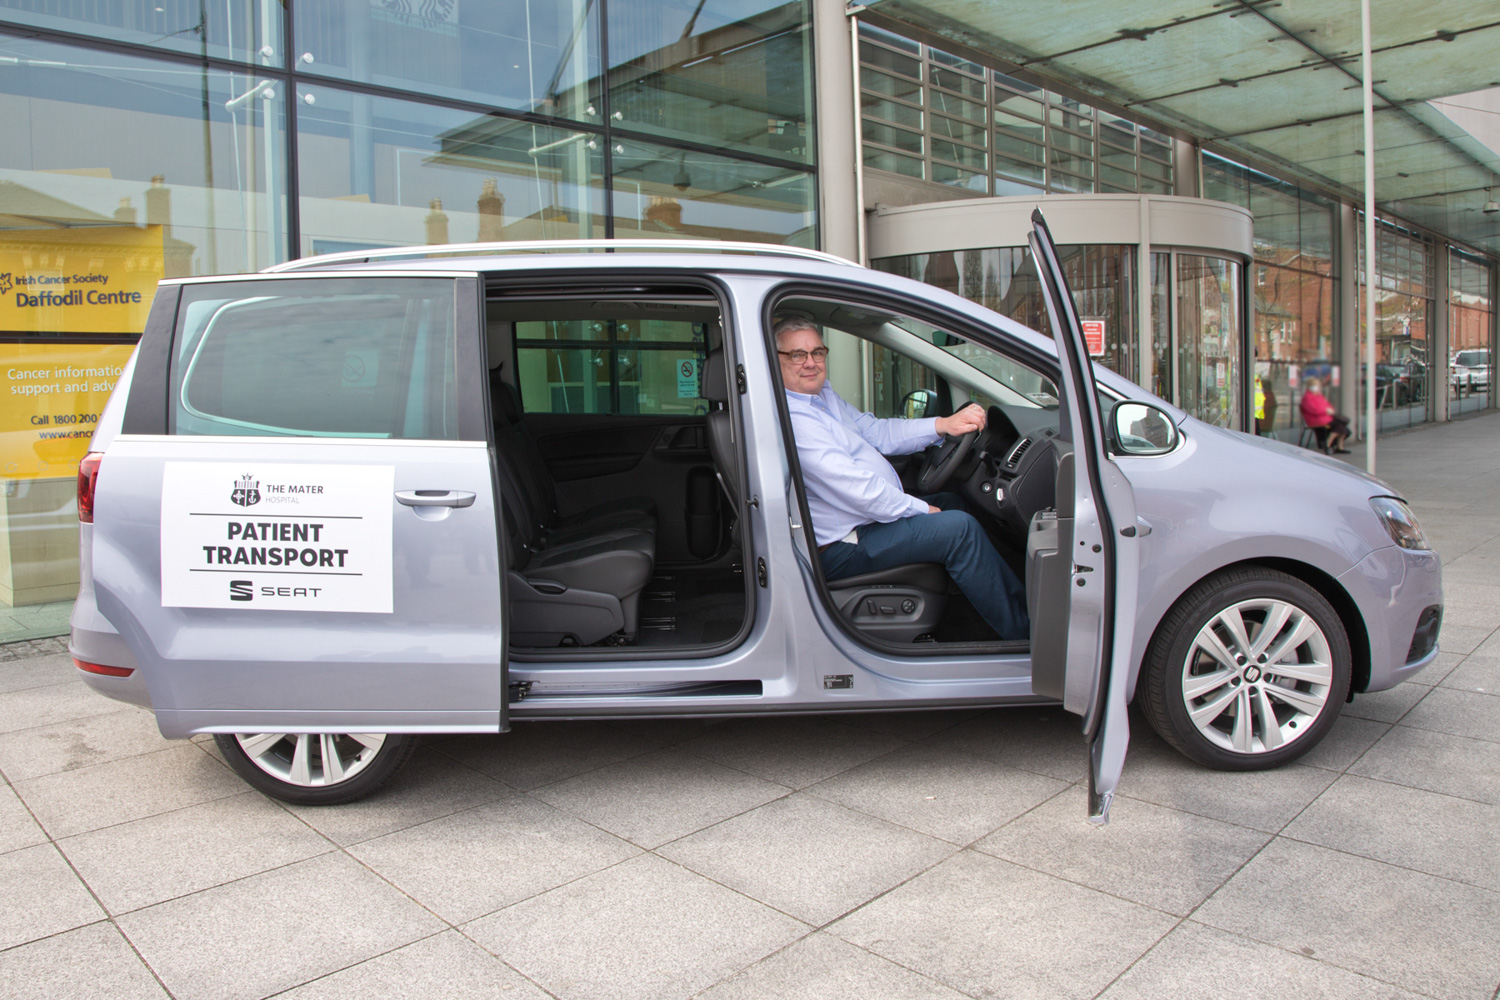 SEAT Ireland donates vehicles to the Mater Hospital